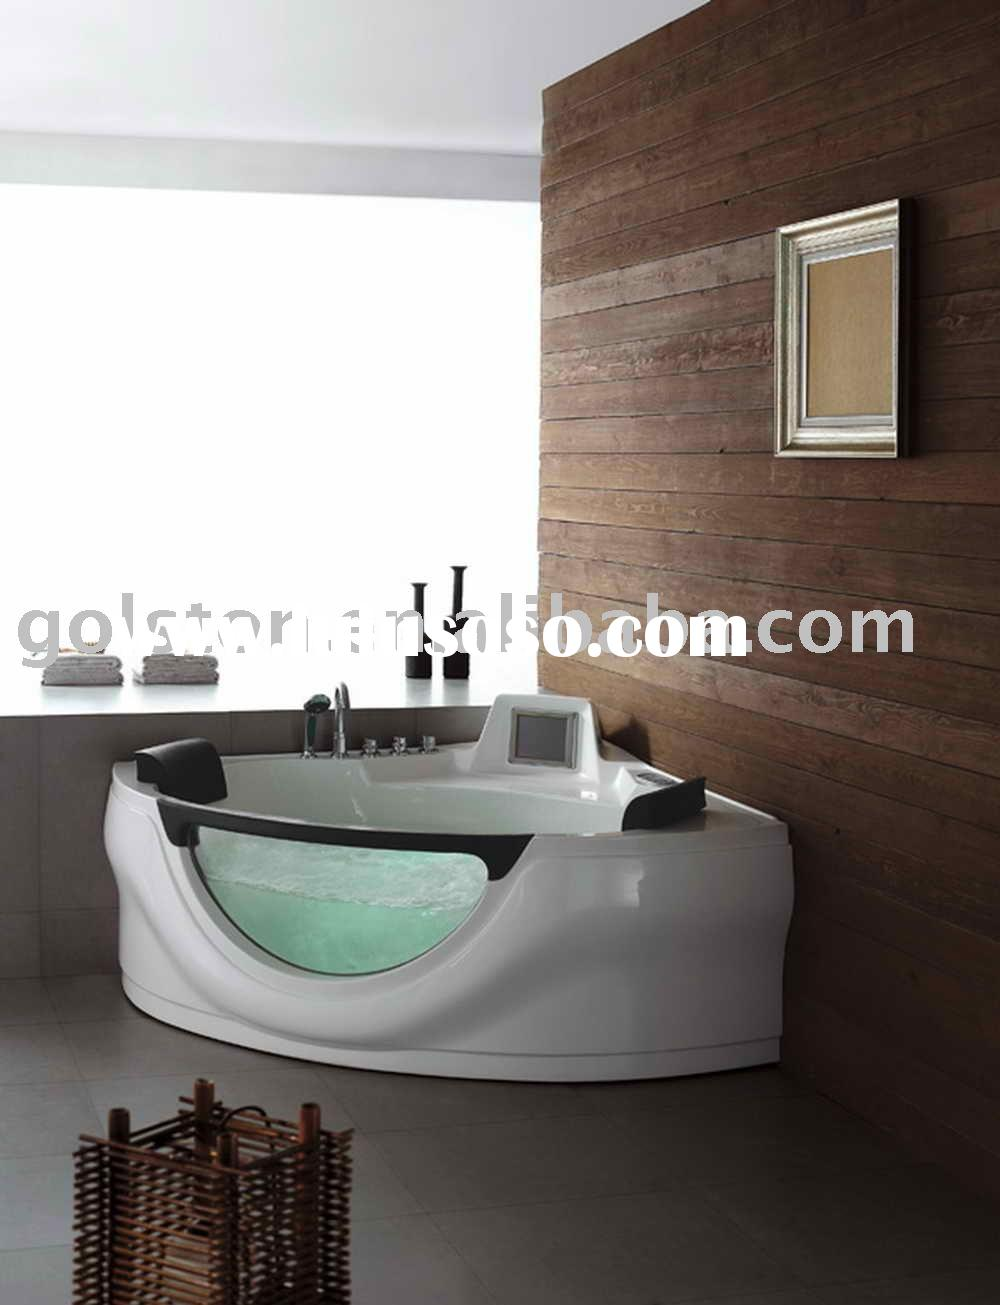 bathtub with TV and whirlpool